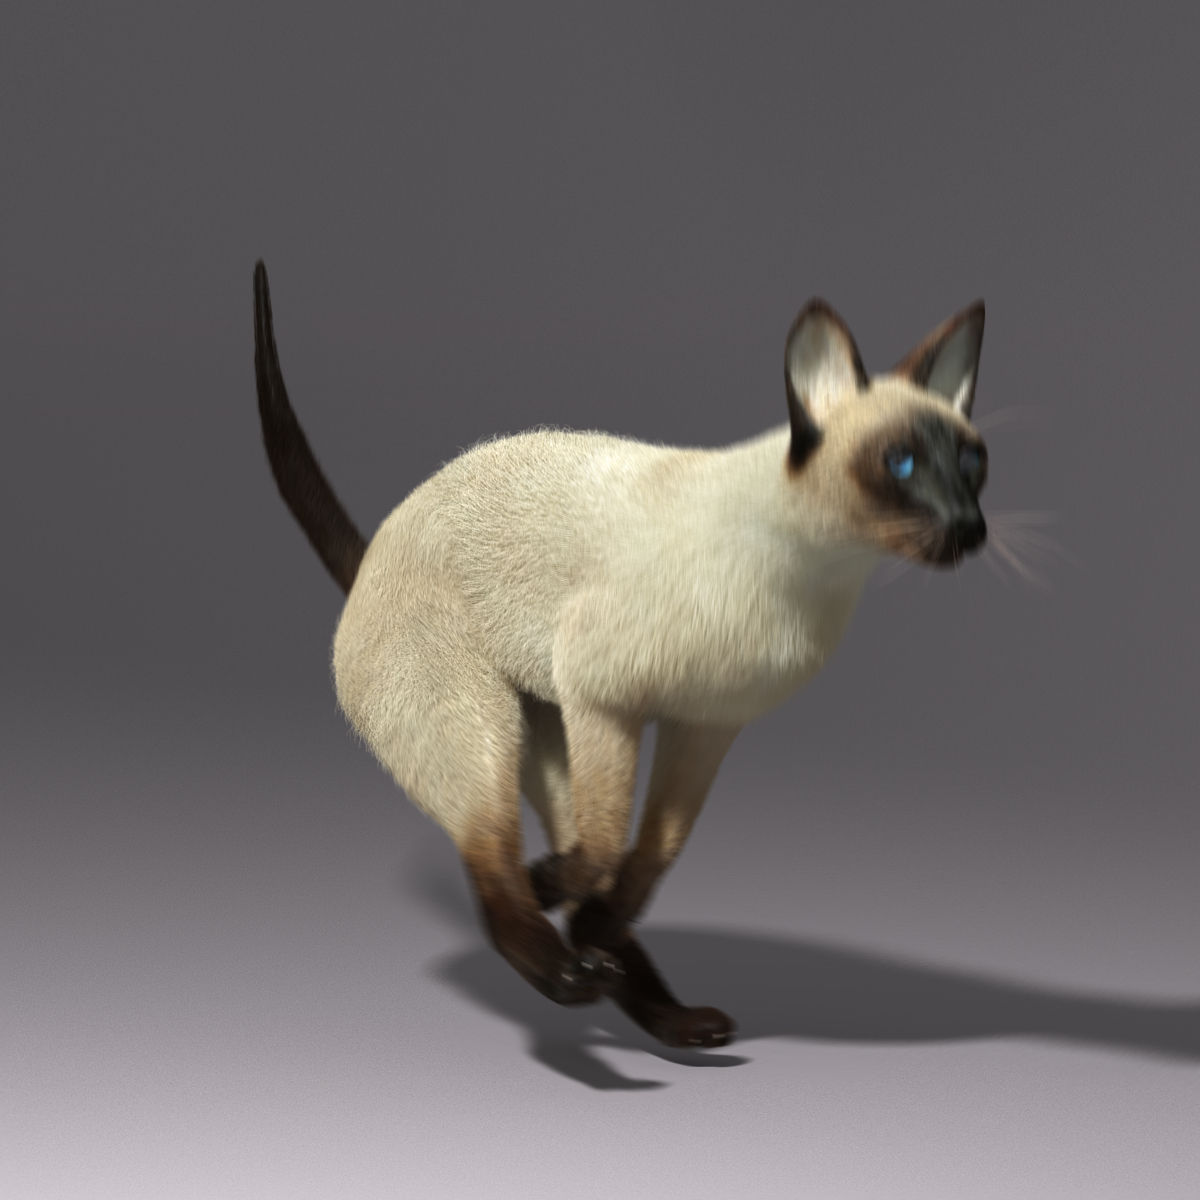 siamese cat 3d model - photo #8